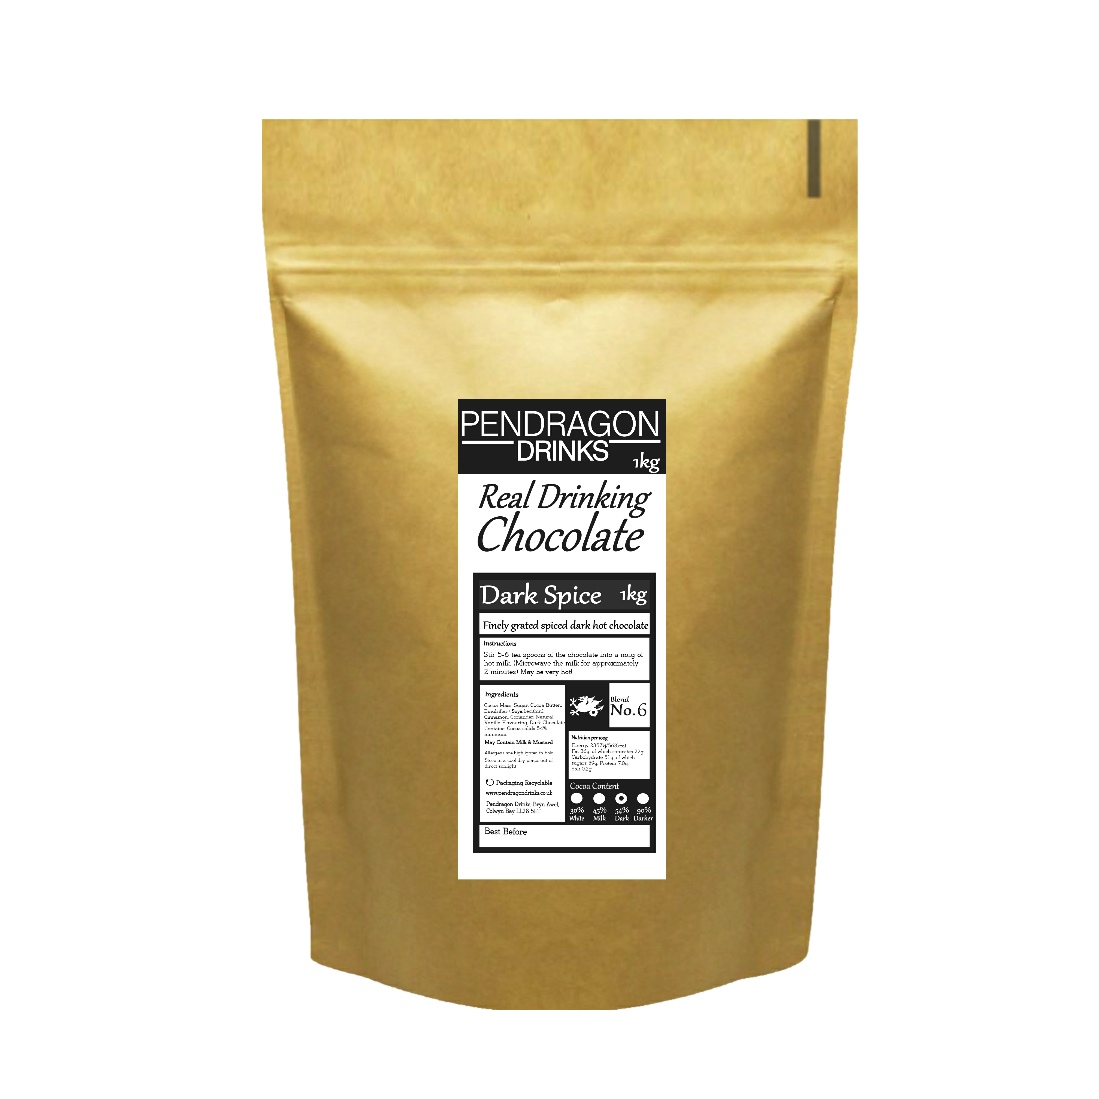 luxury catering hot chocolate, cafe drinks, catering drinks, hot chocolate l'ancienne